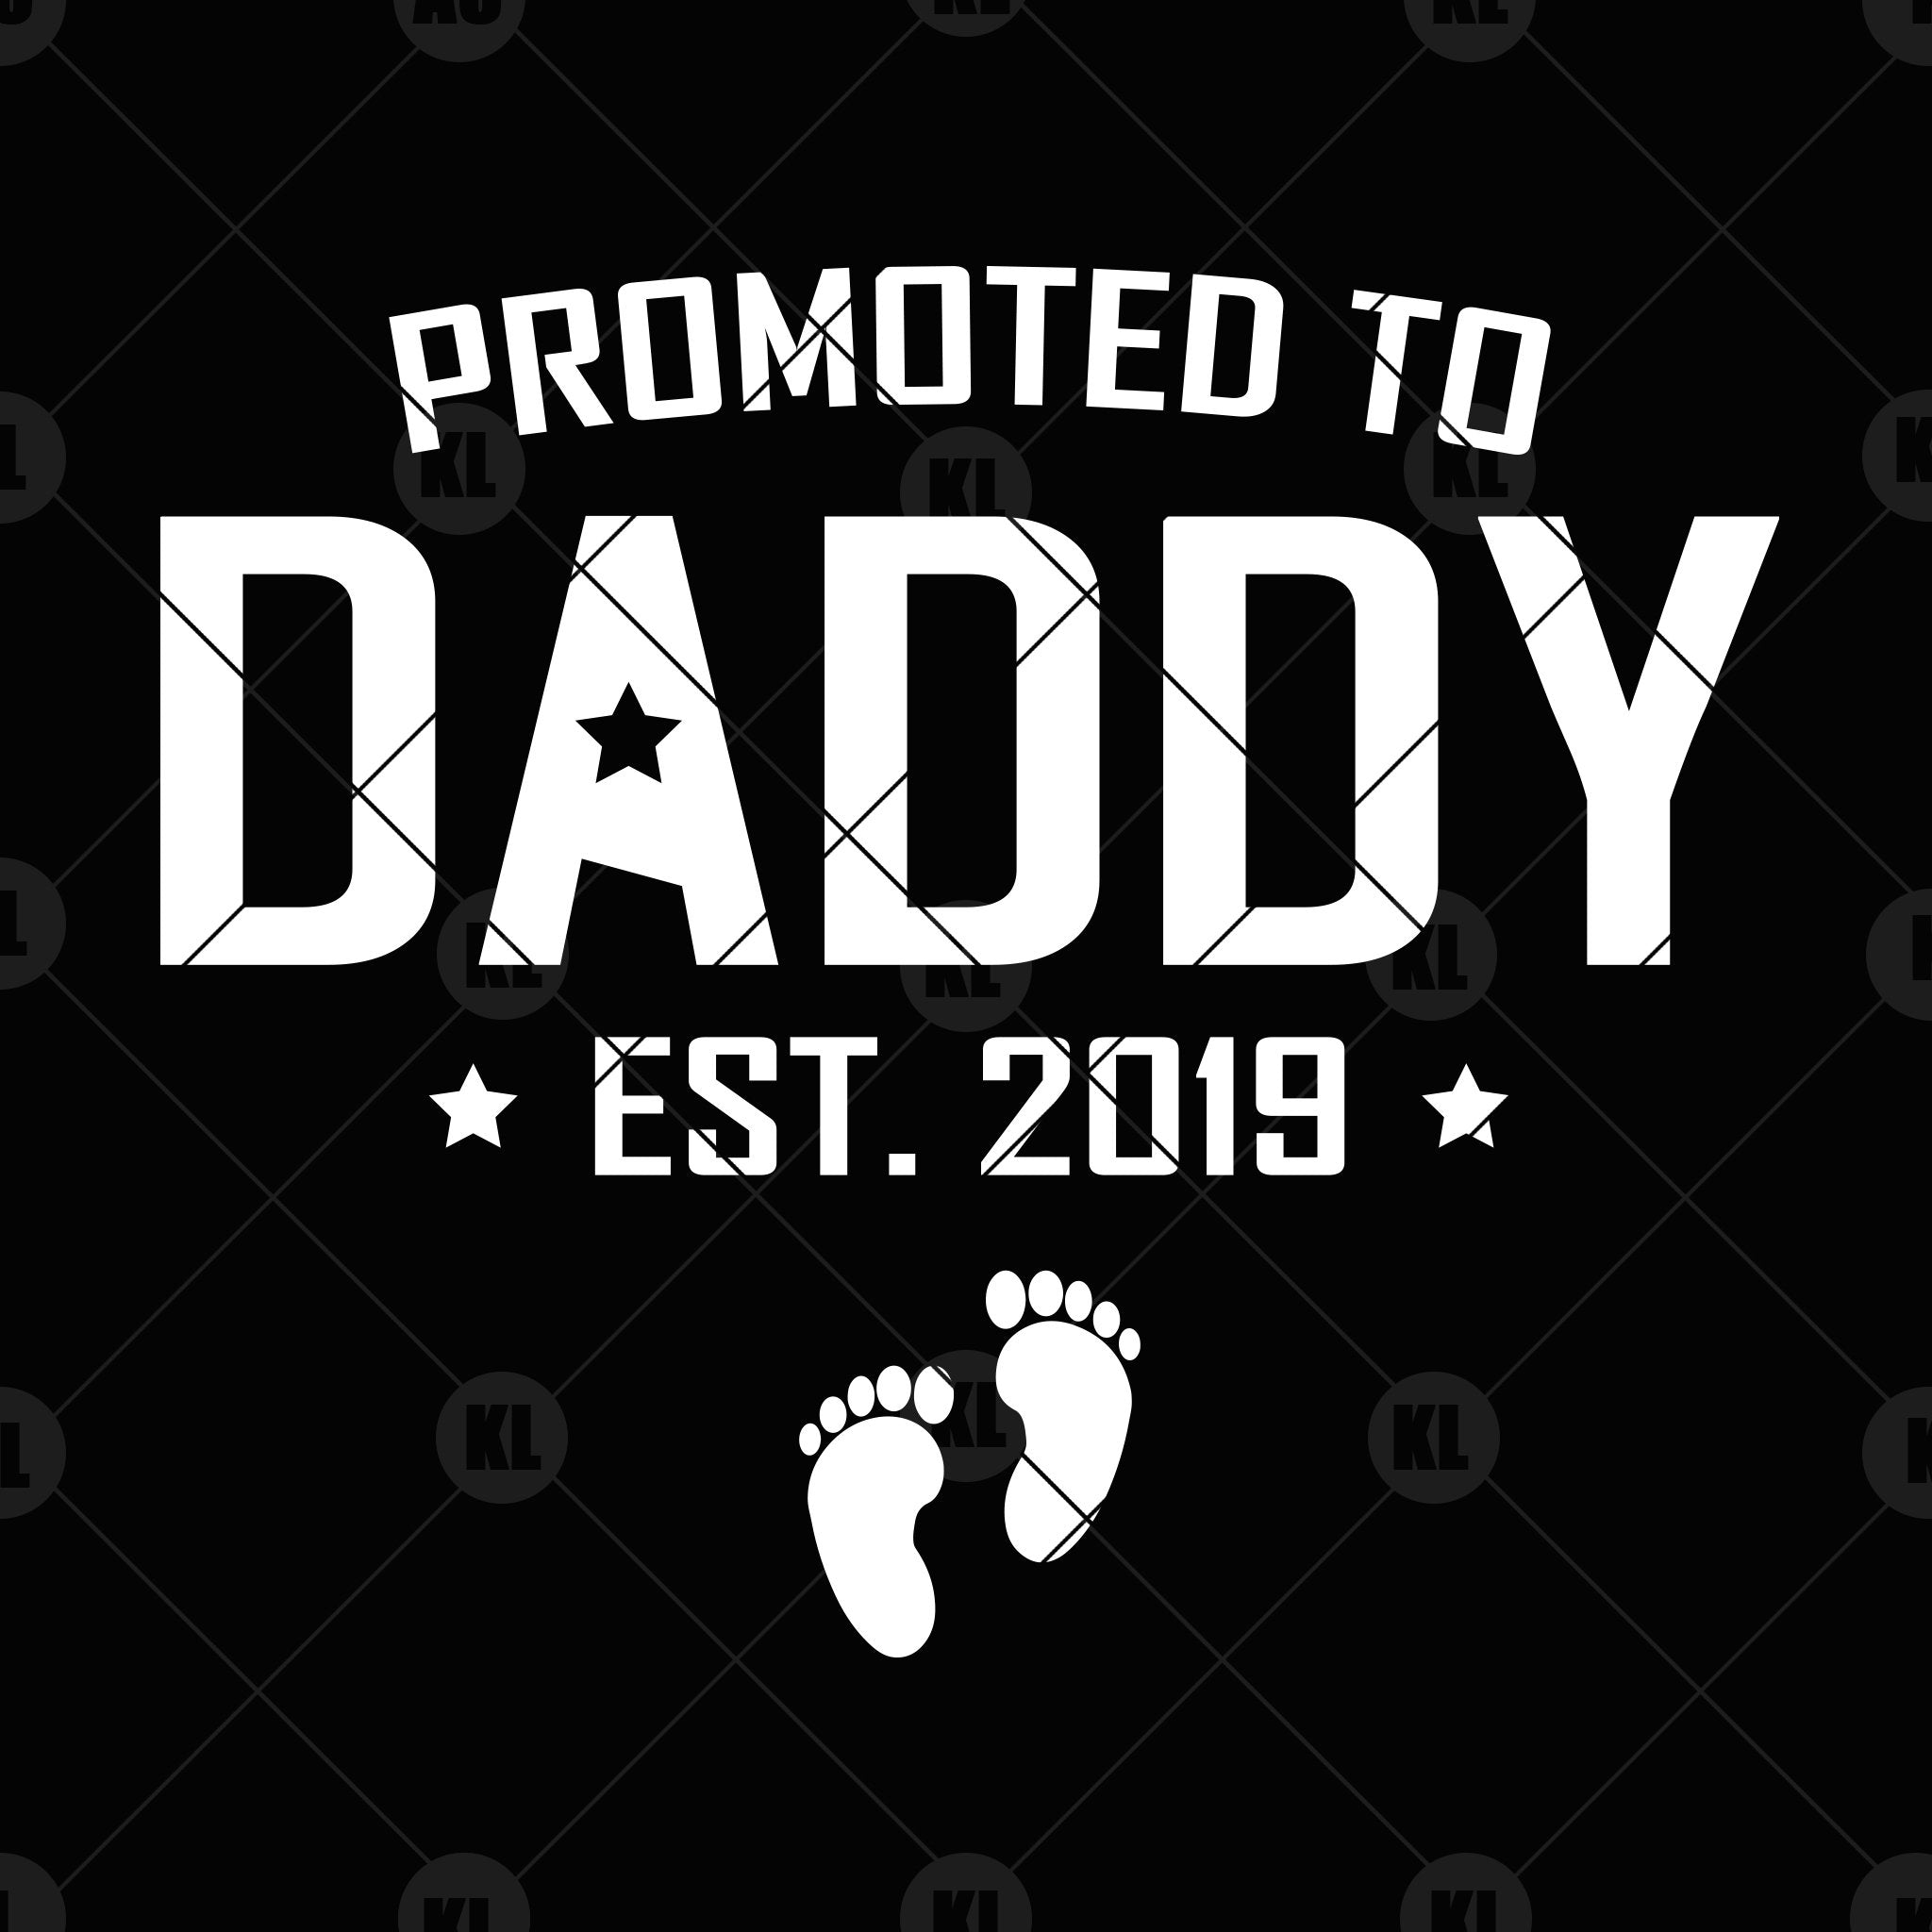 Promoted To Daddy Est 2019 Digital Cut Files Svg Dxf Eps Png Cricu Doran Star